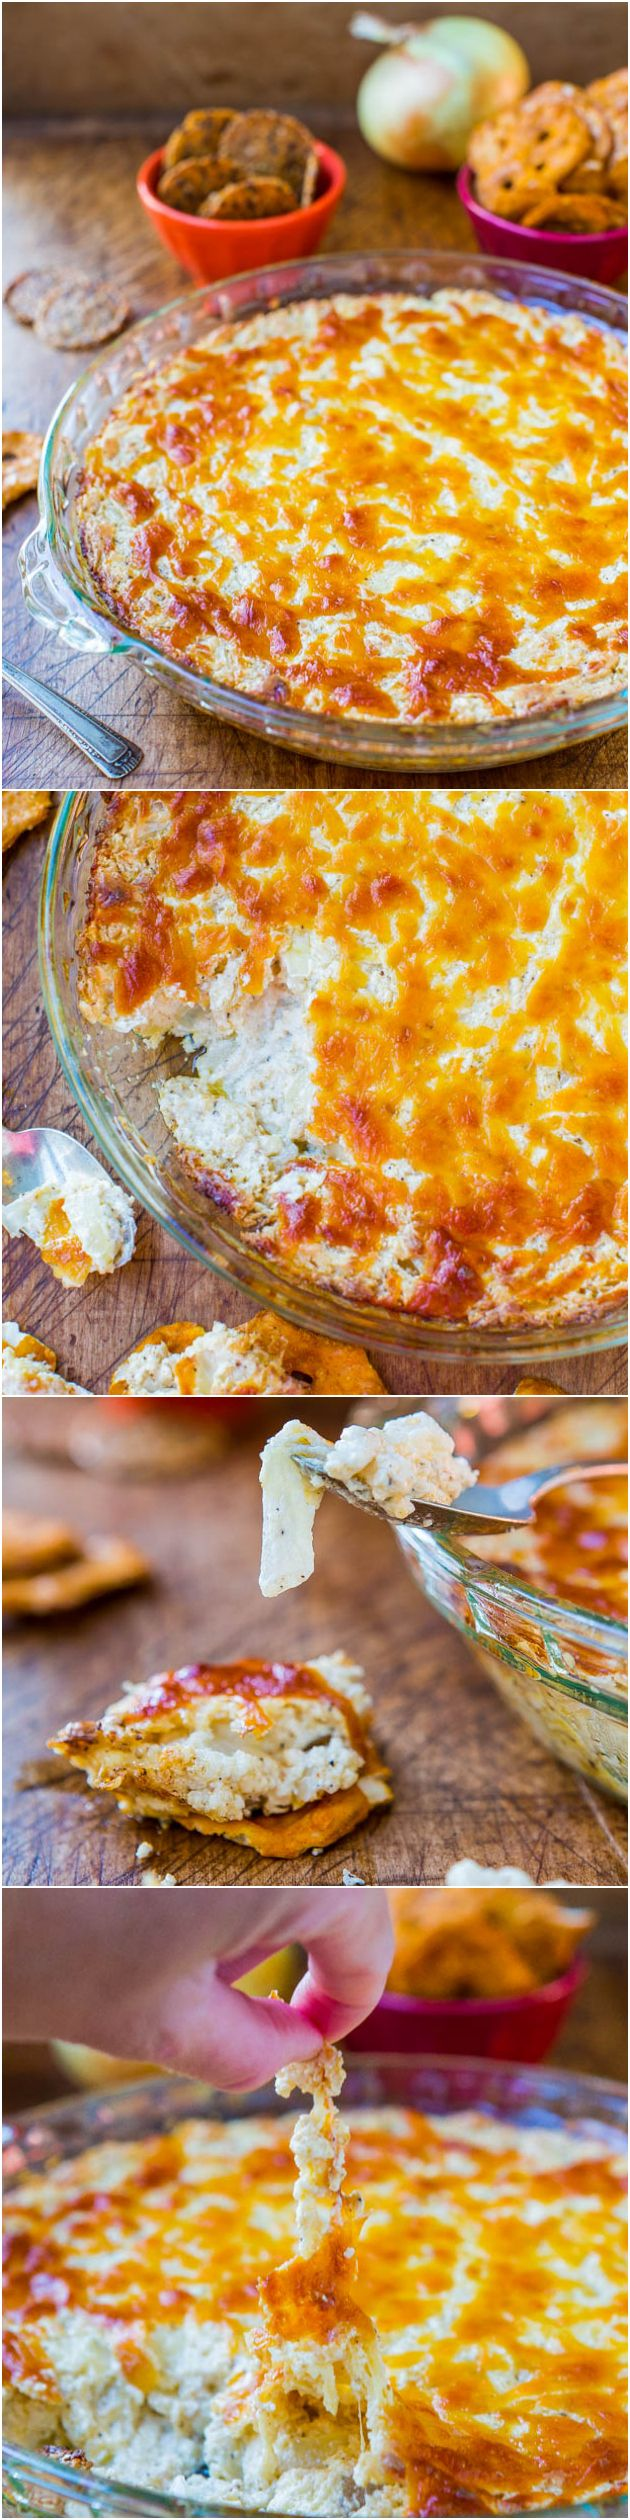 Creamy Baked Double Cheese & Sweet Onion Dip (GF) - An easy dip that's dangerously good. Pure cheesy comfort food that everyone loves!